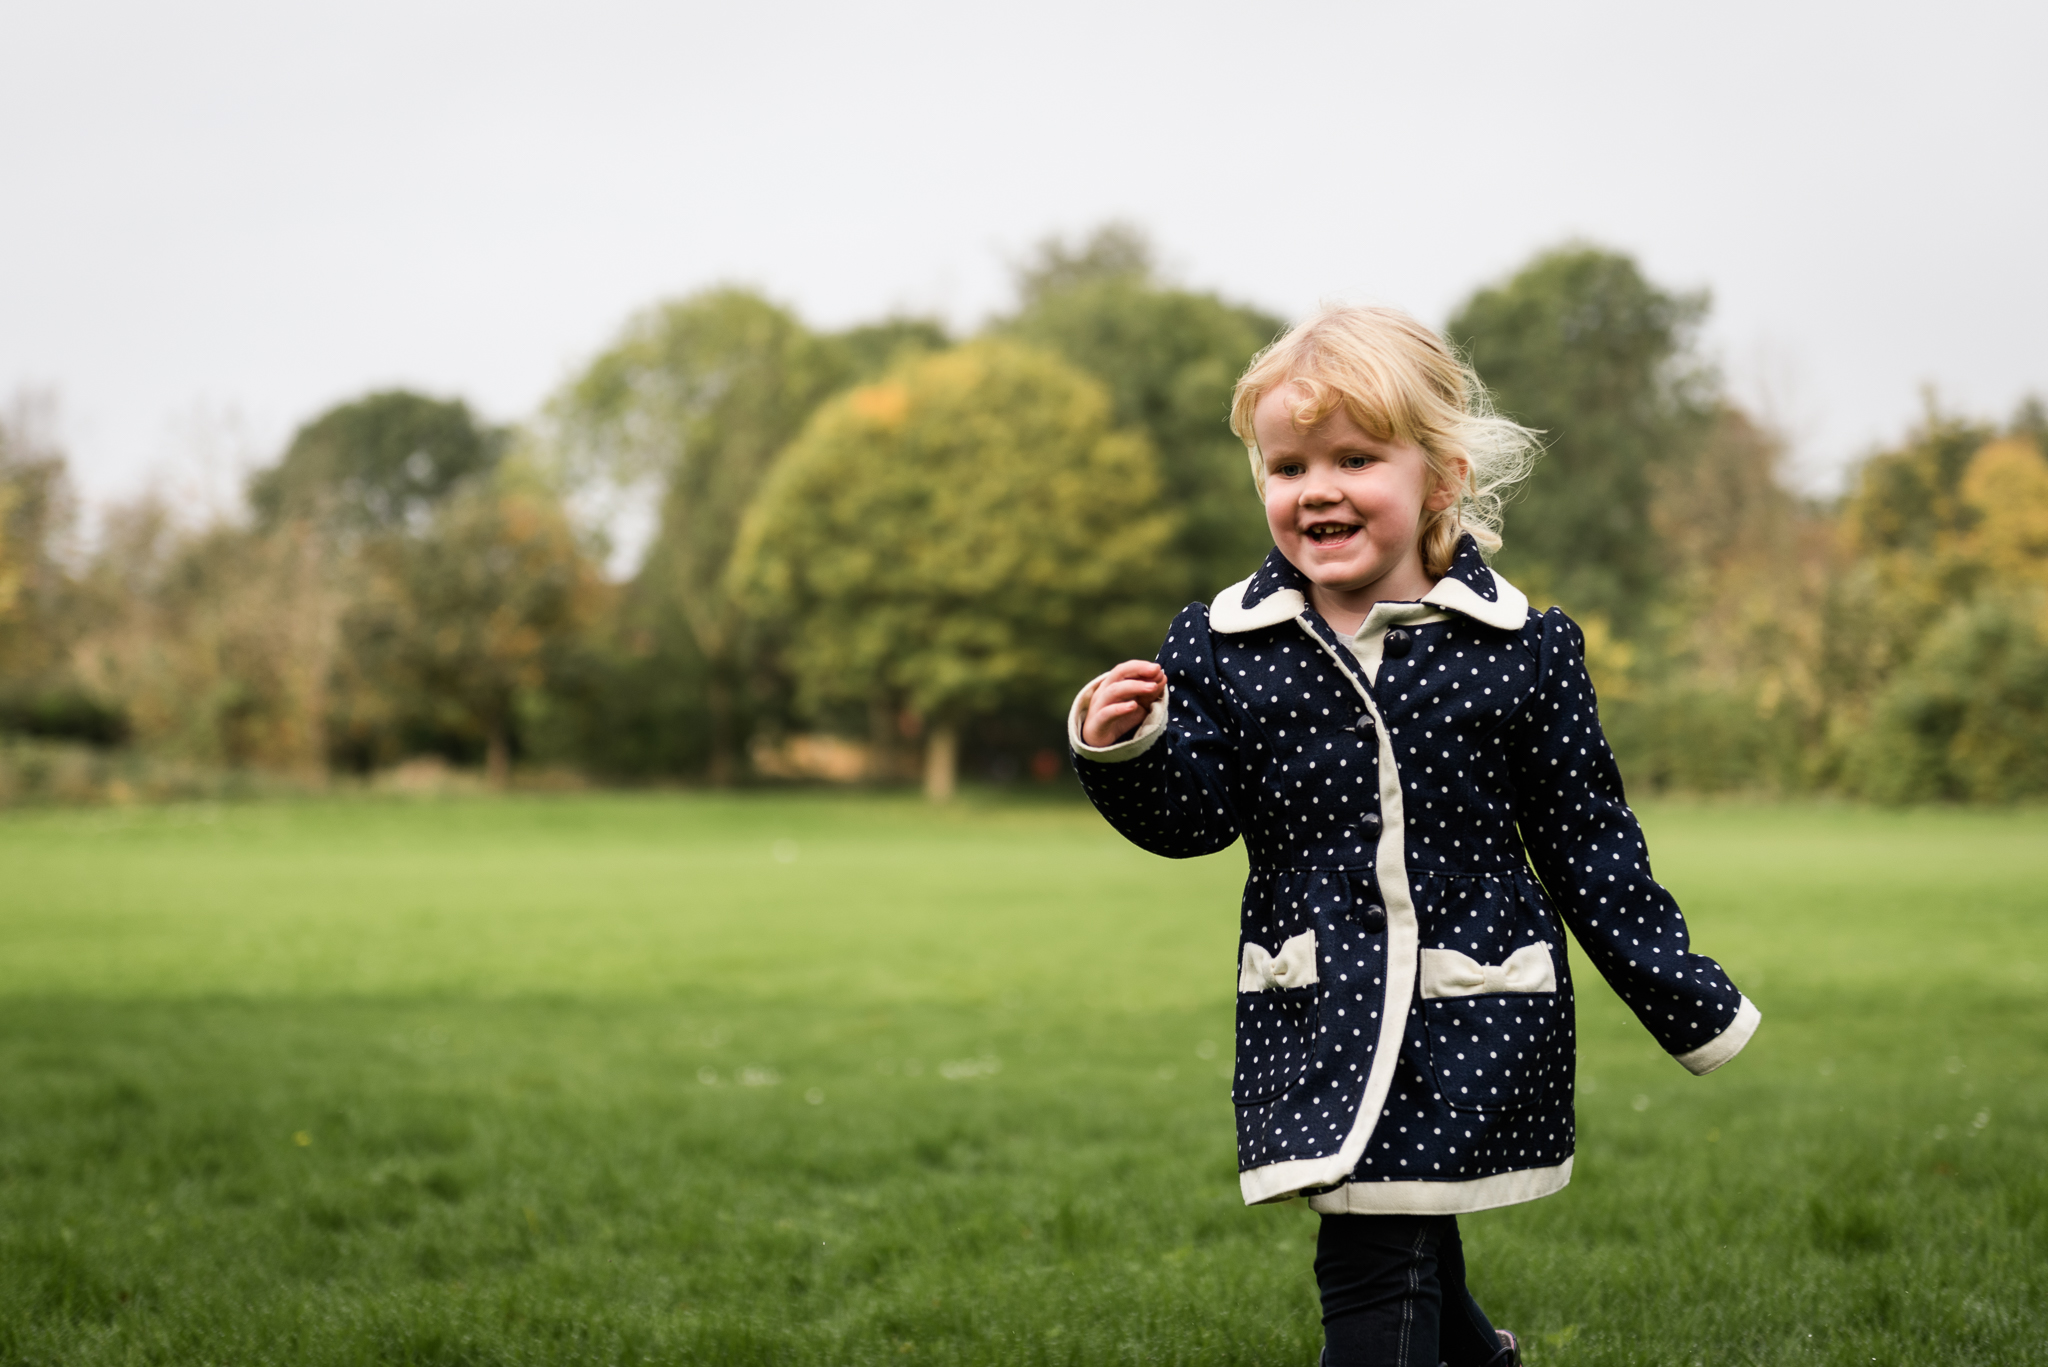 Staffordshire Documentary Family Photography Autumn Lifestyle Fall Leaves - Jenny Harper-15.jpg